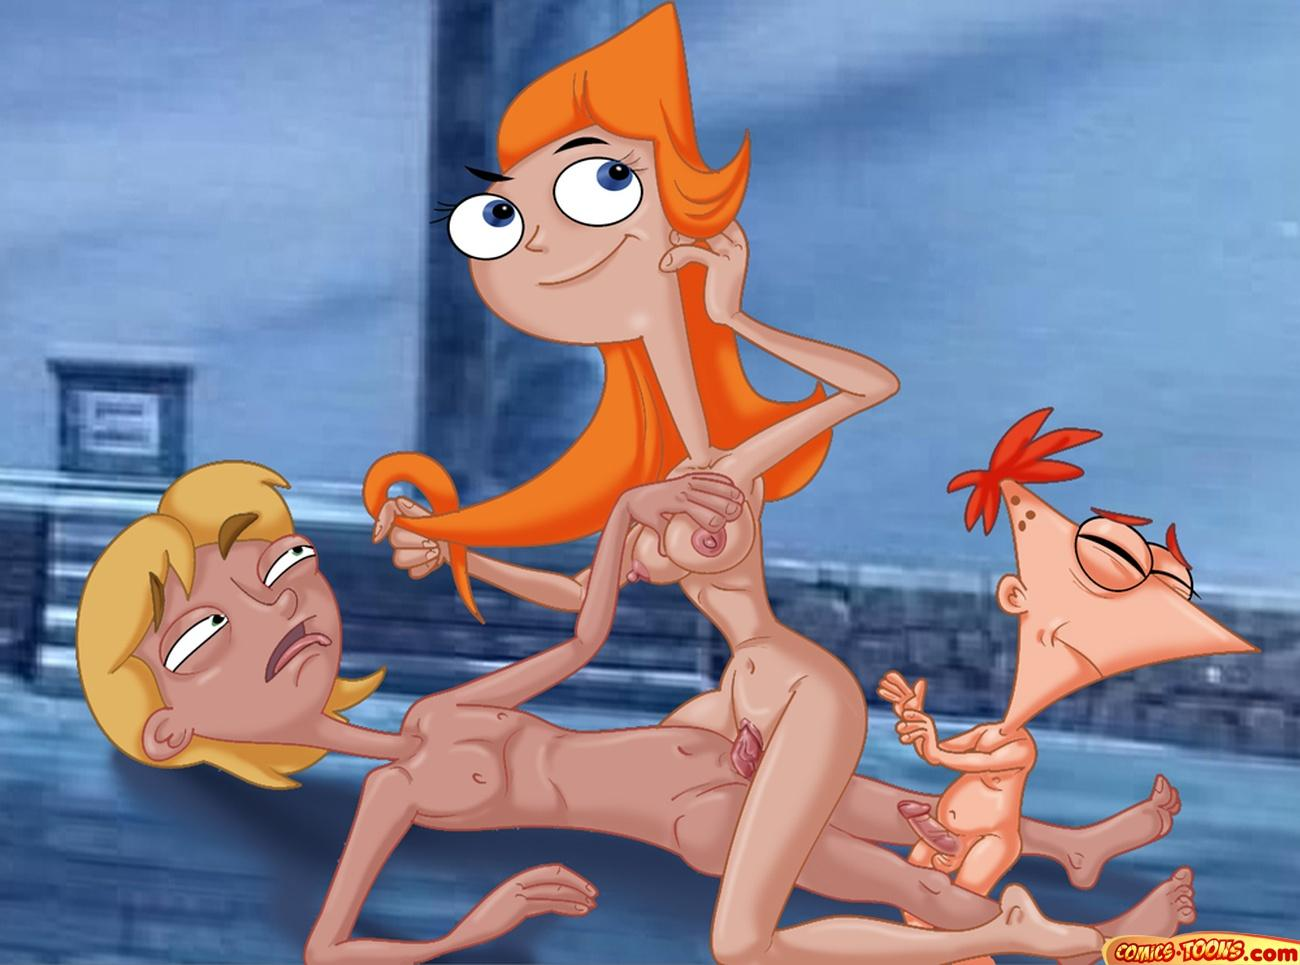 candace naked and phineas ferb If it exists theres porn